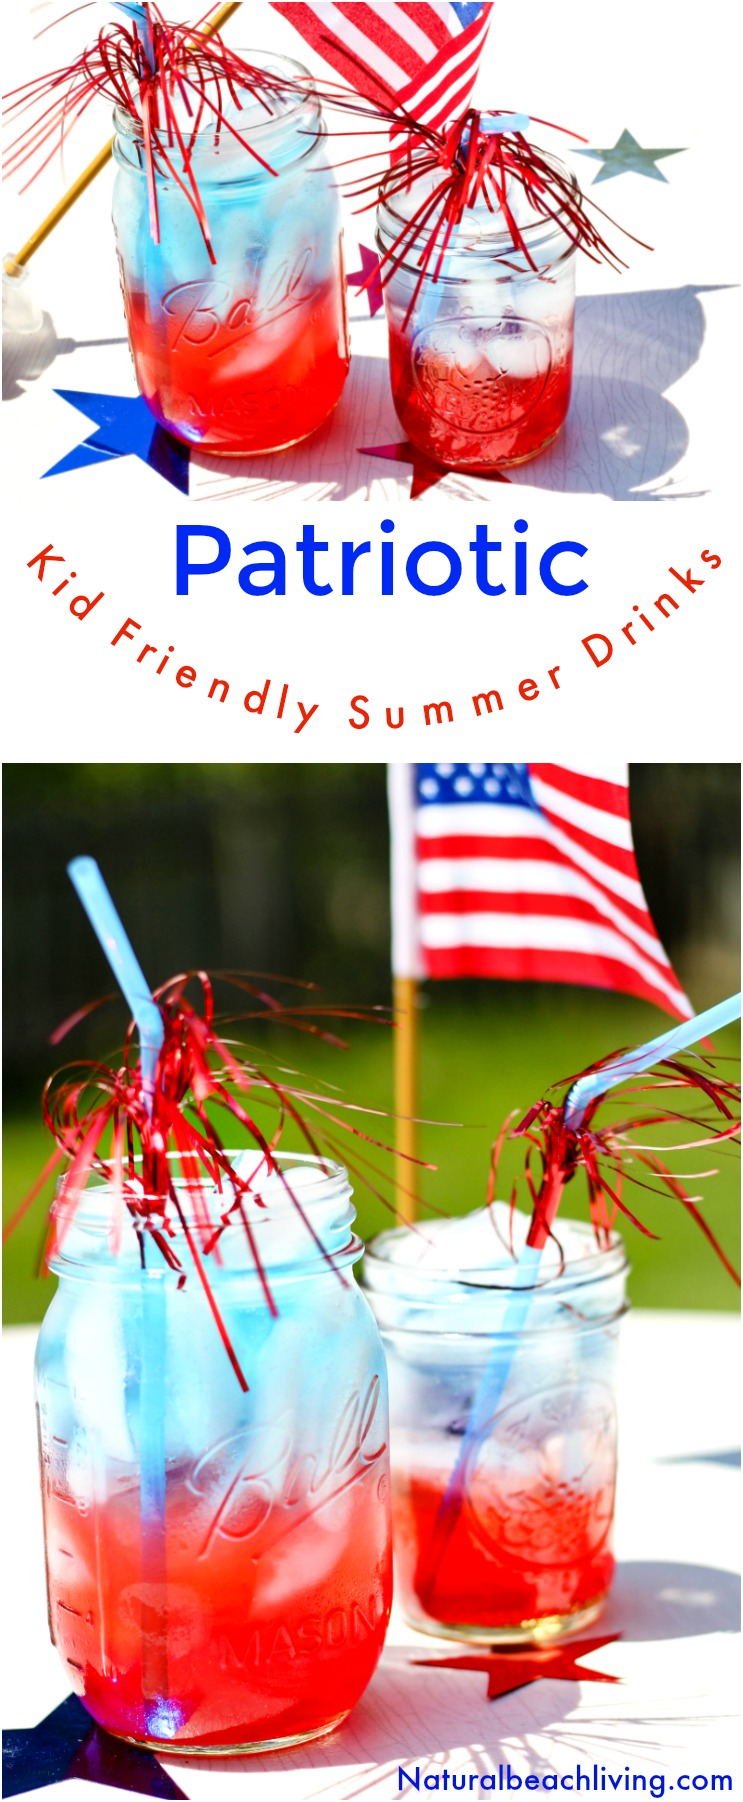 The Best Patriotic Non Alcoholic Summer Drinks, Kid Friendly Summer Drinks, Easy Summer Drink Recipe Everyone Loves, Perfect July 4th Recipe Party Idea